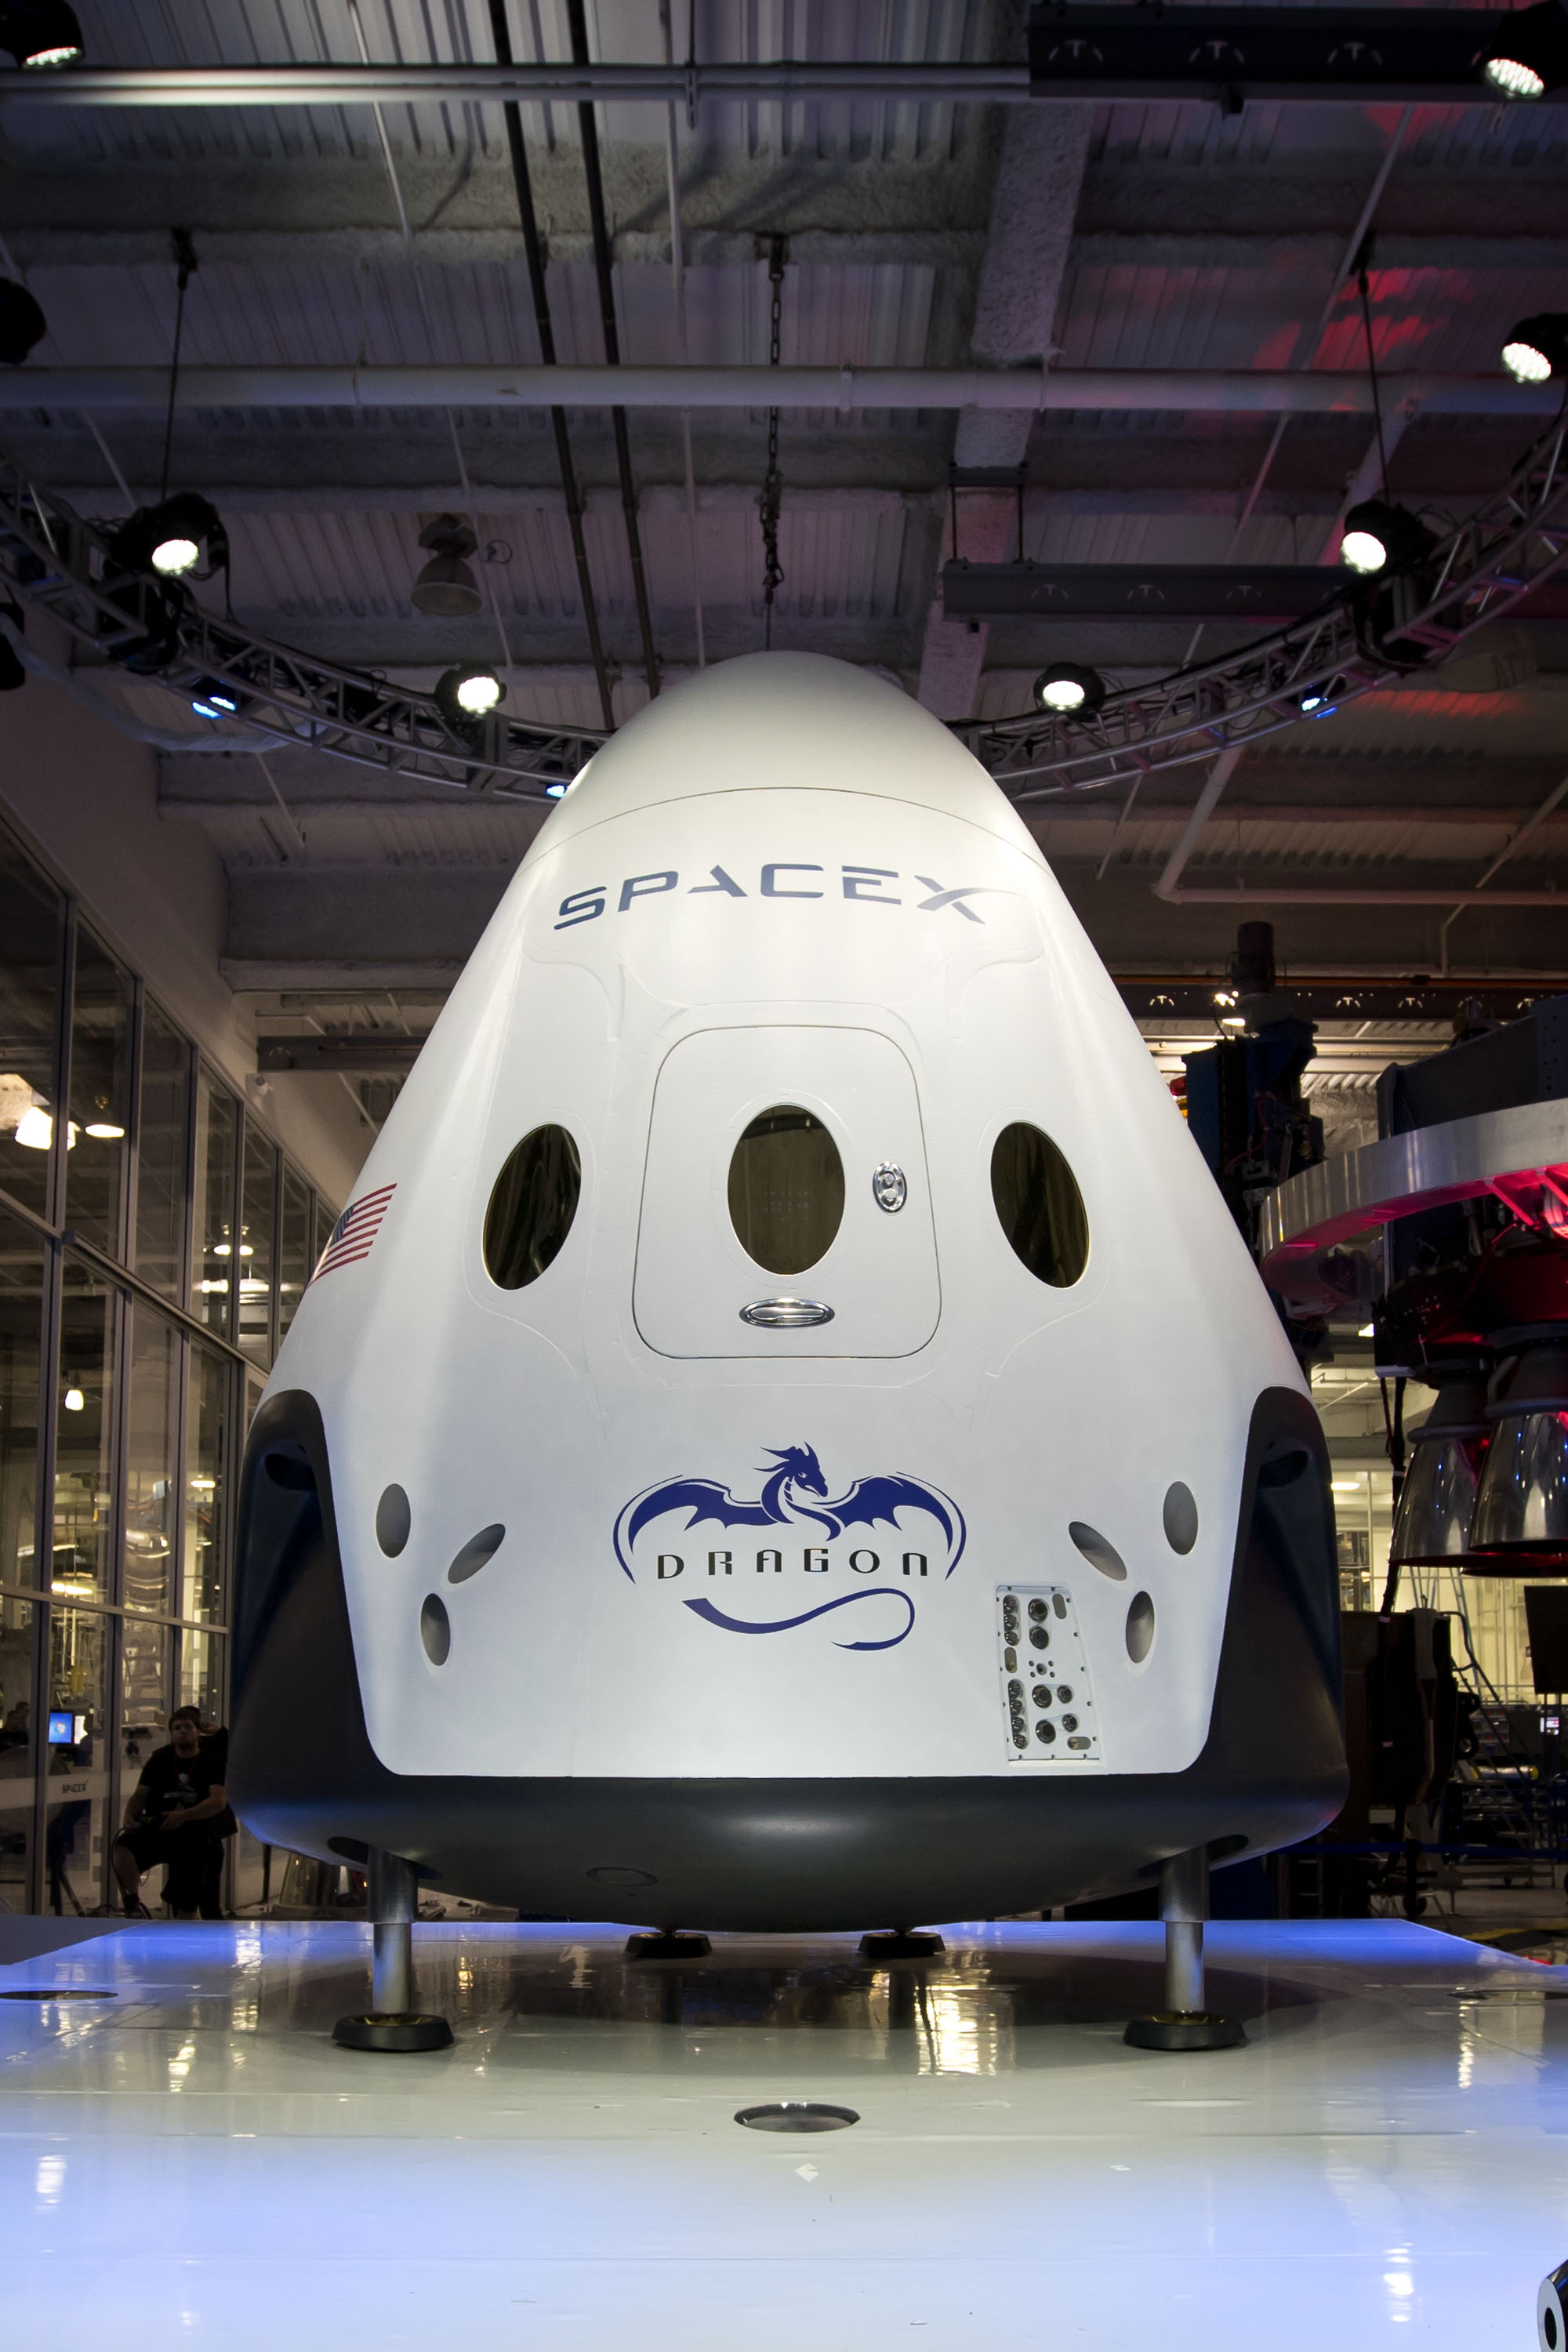 space flight spacex dragon v2 insider - photo #26